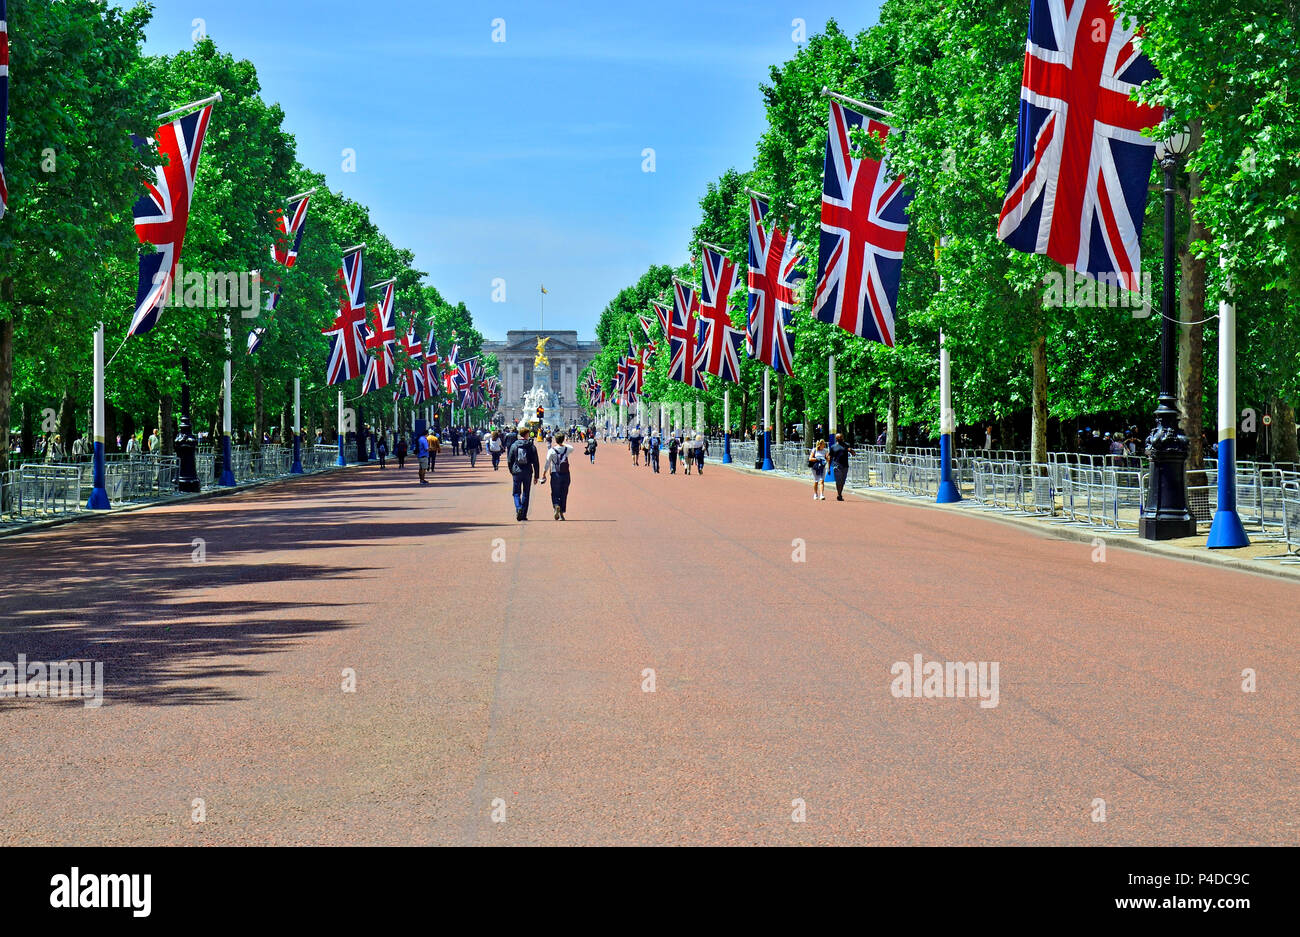 The Mall, looking towards Buckingham Palace, London, England, UK. Union Flags in place the Trooping of the Colour 2018 - Stock Image